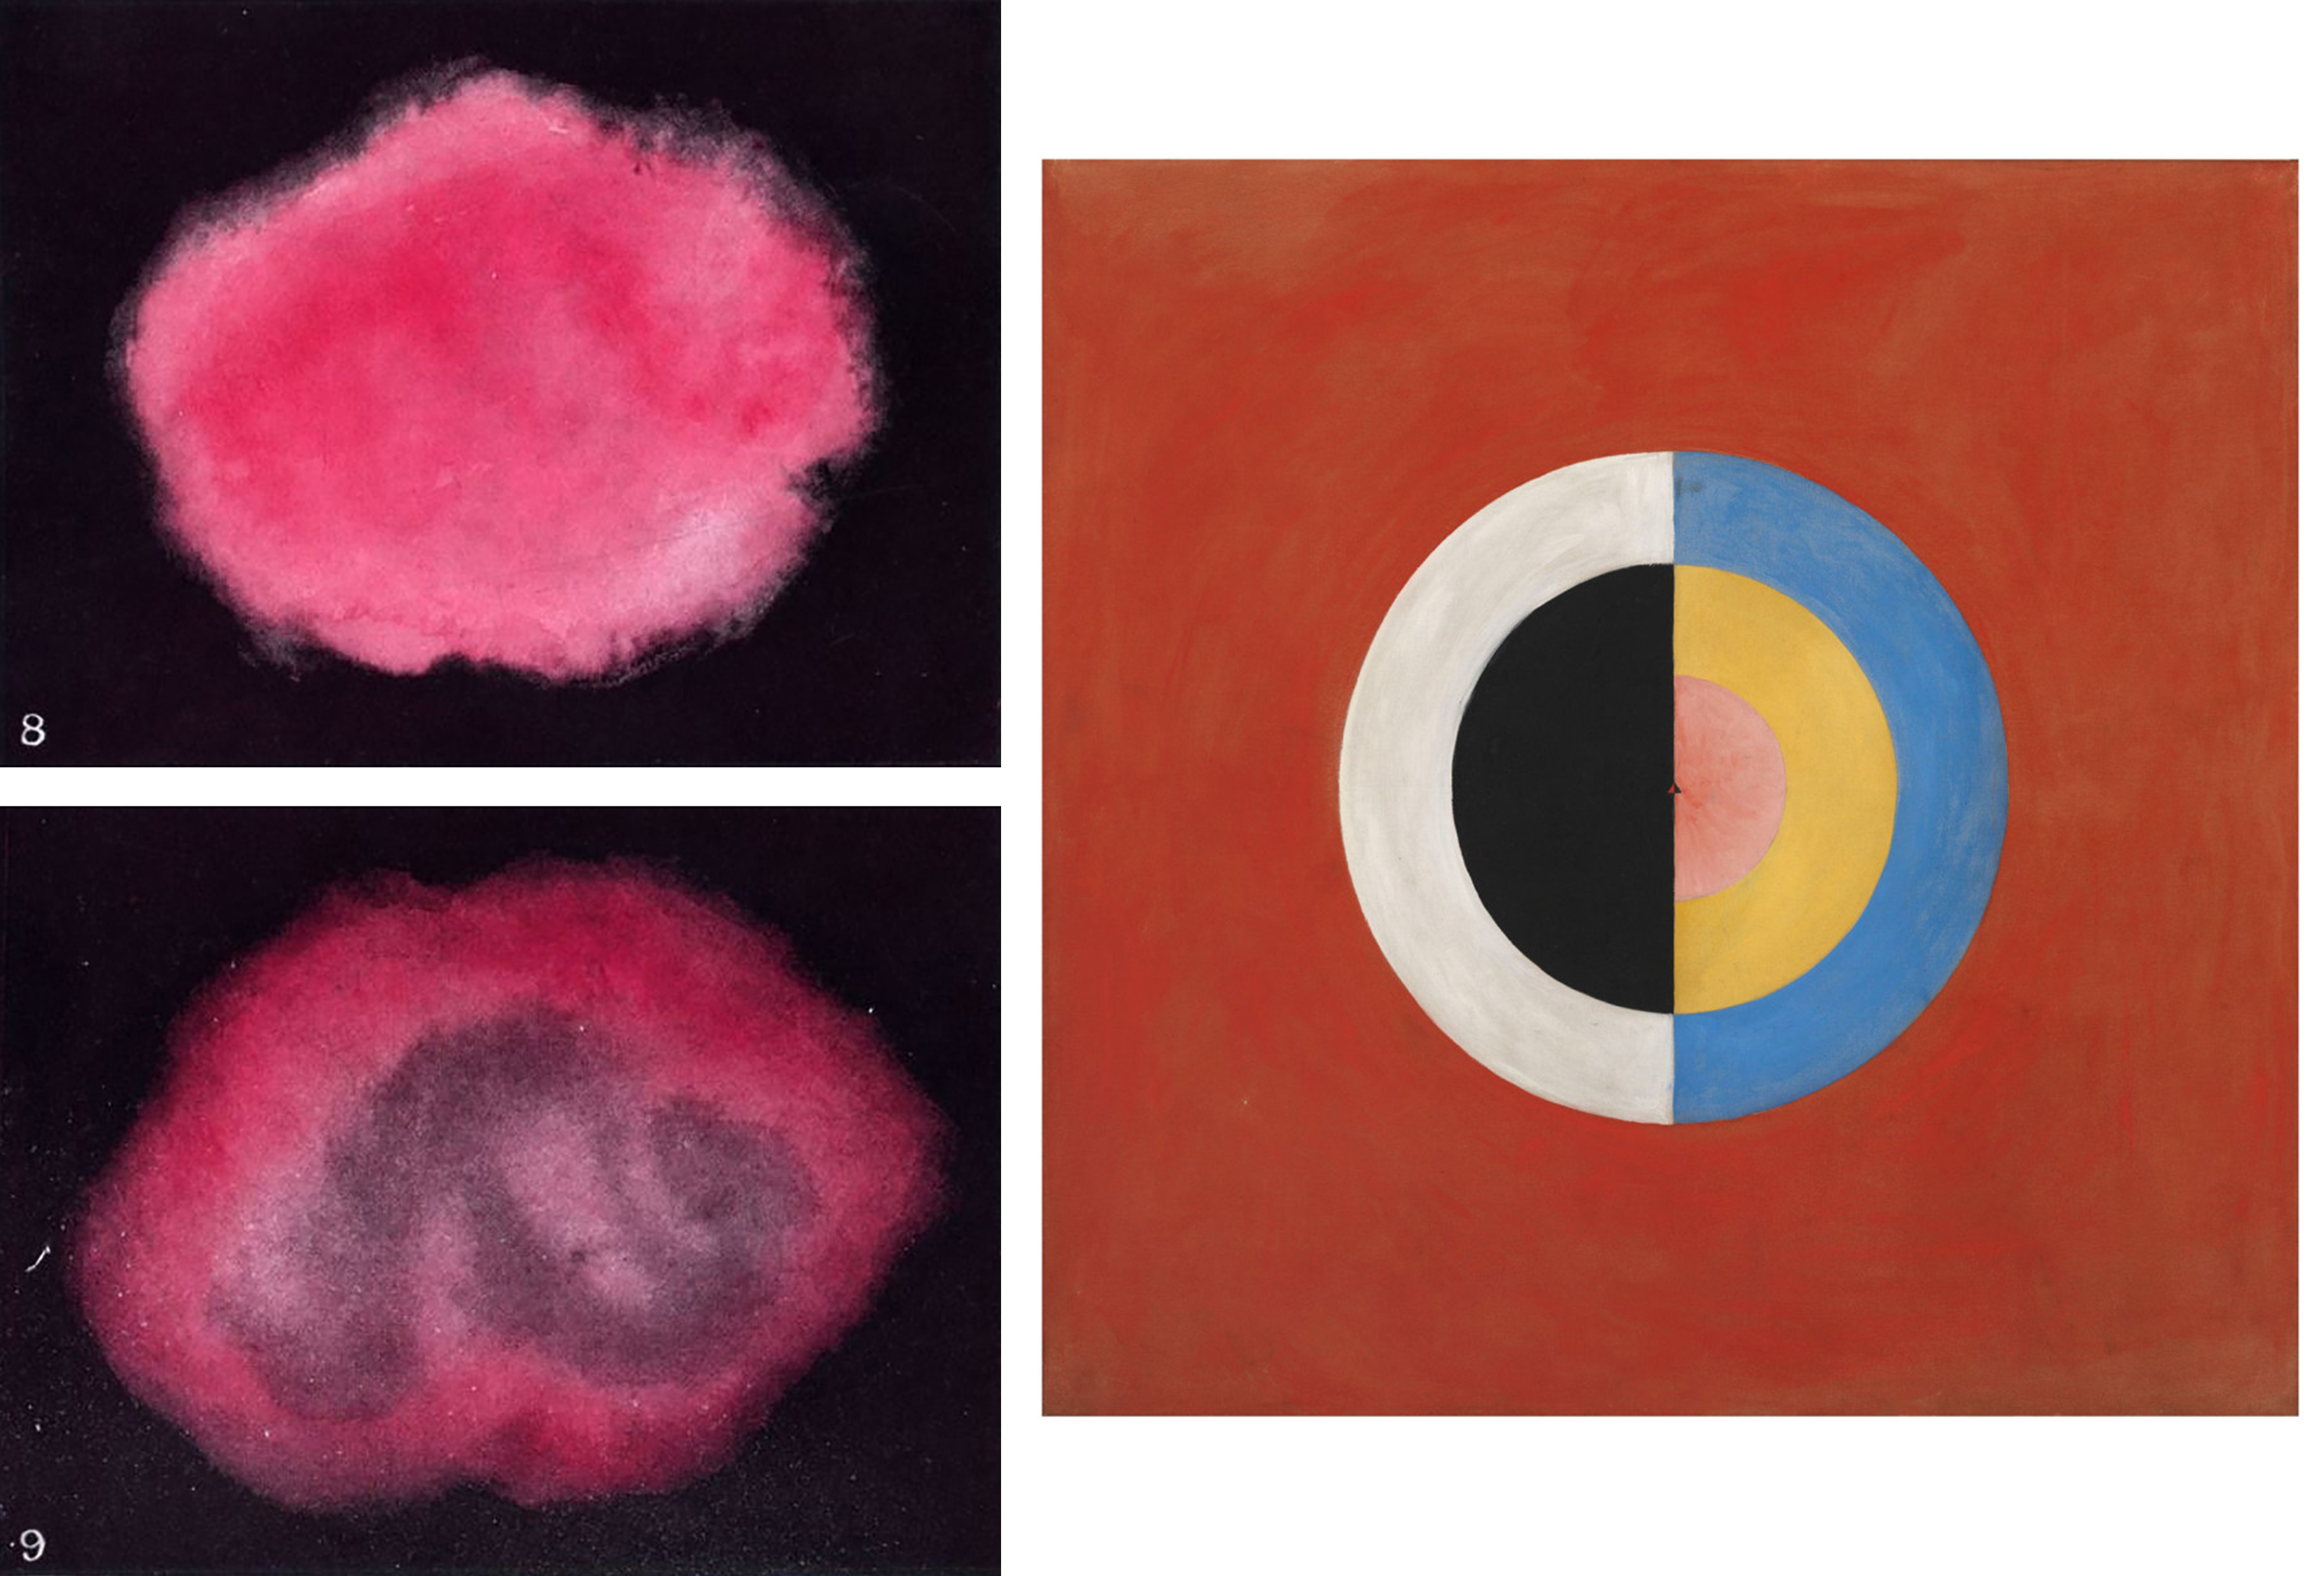 Left: Figures 8 and 9 from Annie Besant and C. W. Leadbeater, Thought Forms, 1905 (London: The Theosophical Publishing House LTD). Right: Hilma af Klint, Group IX/SUW, No. 17. The Swan, 1915, oil on canvas, 150.5 × 151 cm (Moderna Museet / Stockholm).